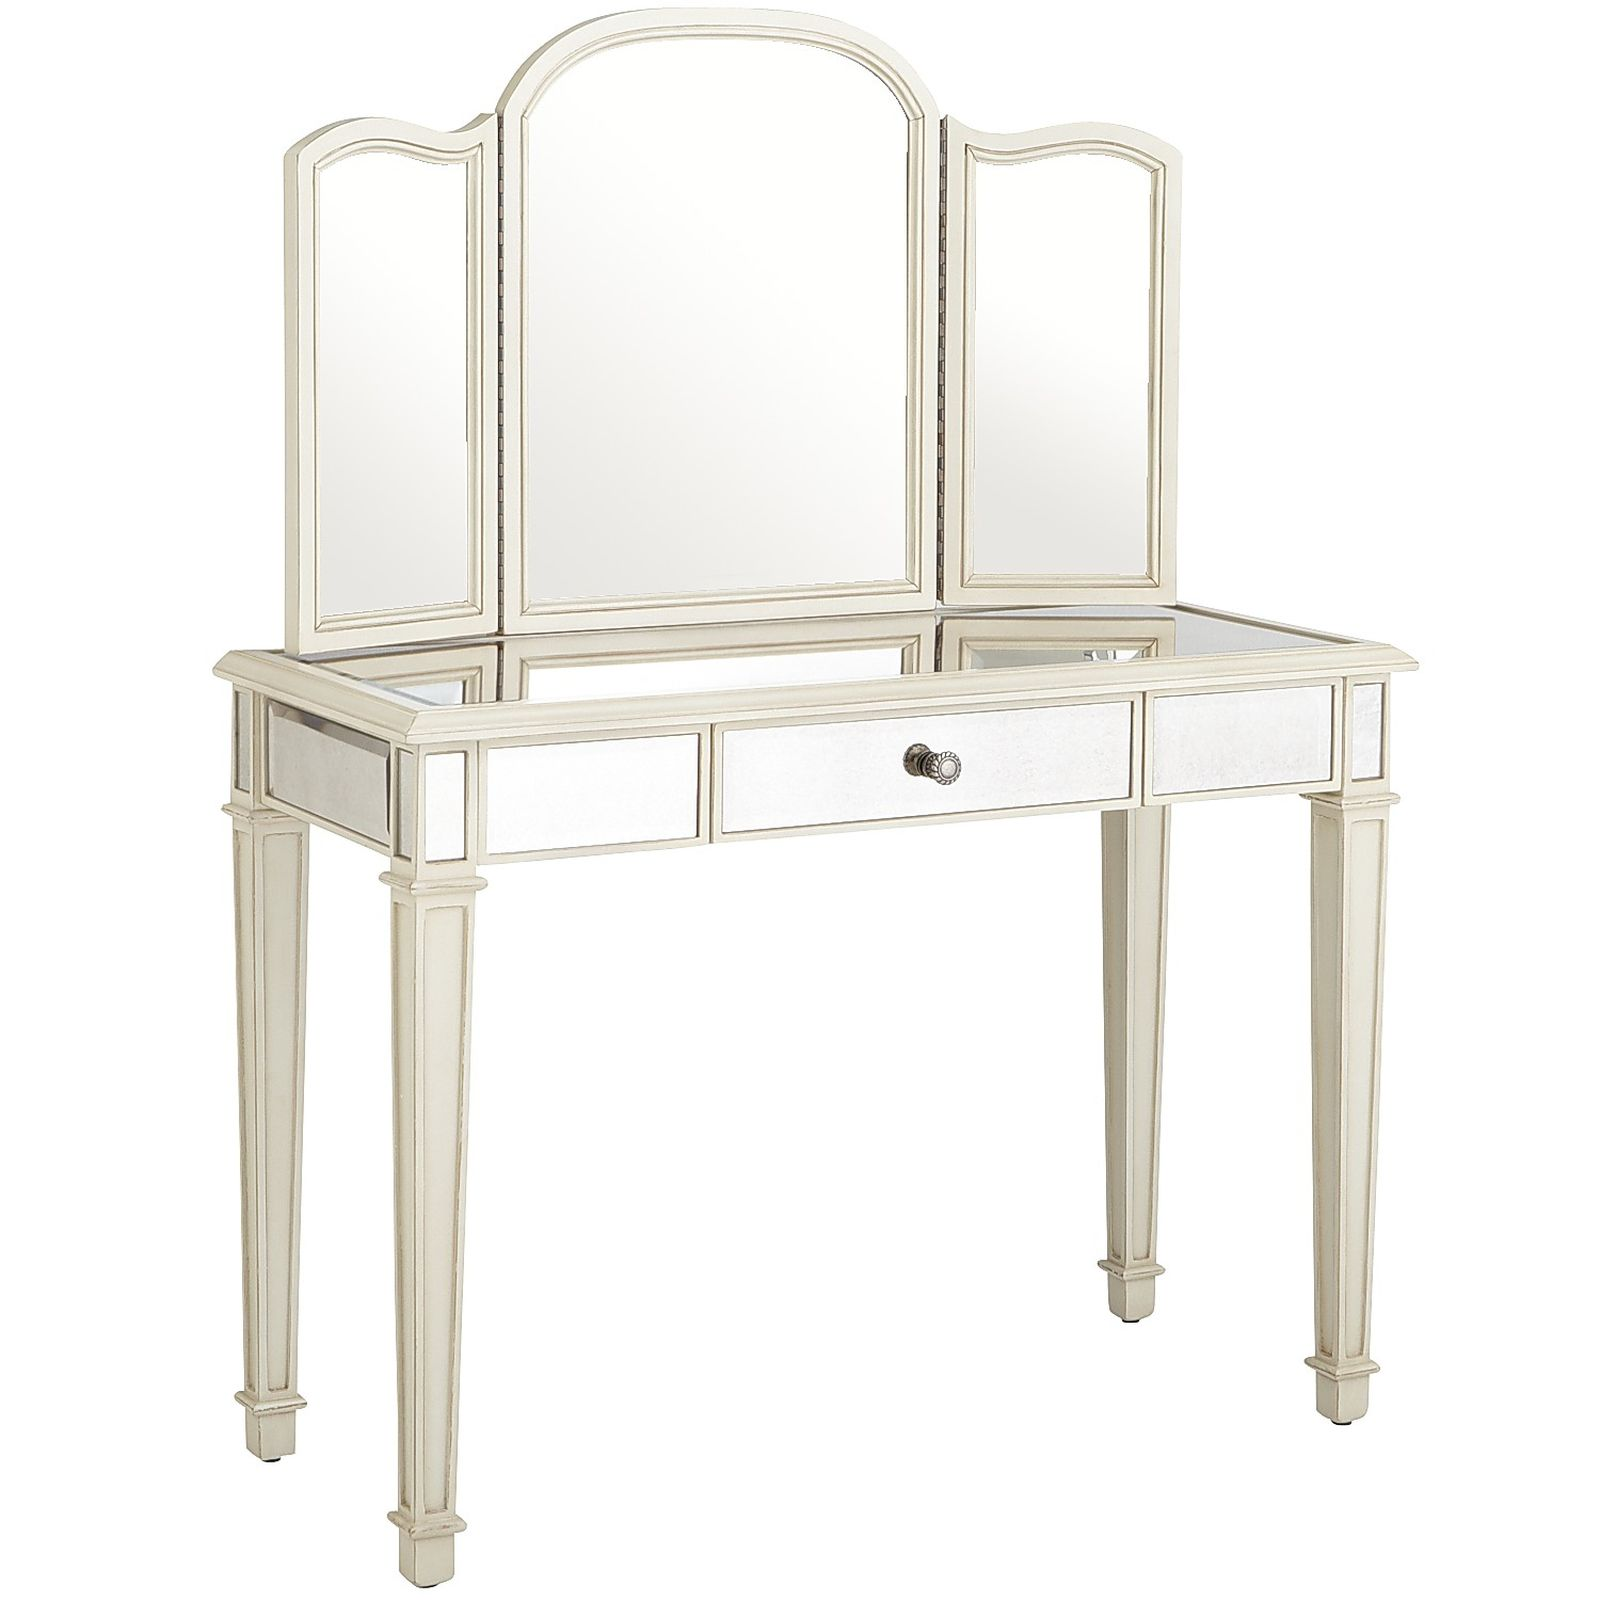 Fascinating Hayworth Vanity for Bedroom Furniture Ideas: Brilliant Hayworth Vanity Mirrored Vanity And Ikea Vanity Also Ikea Rug Hayworth Rug Ideas